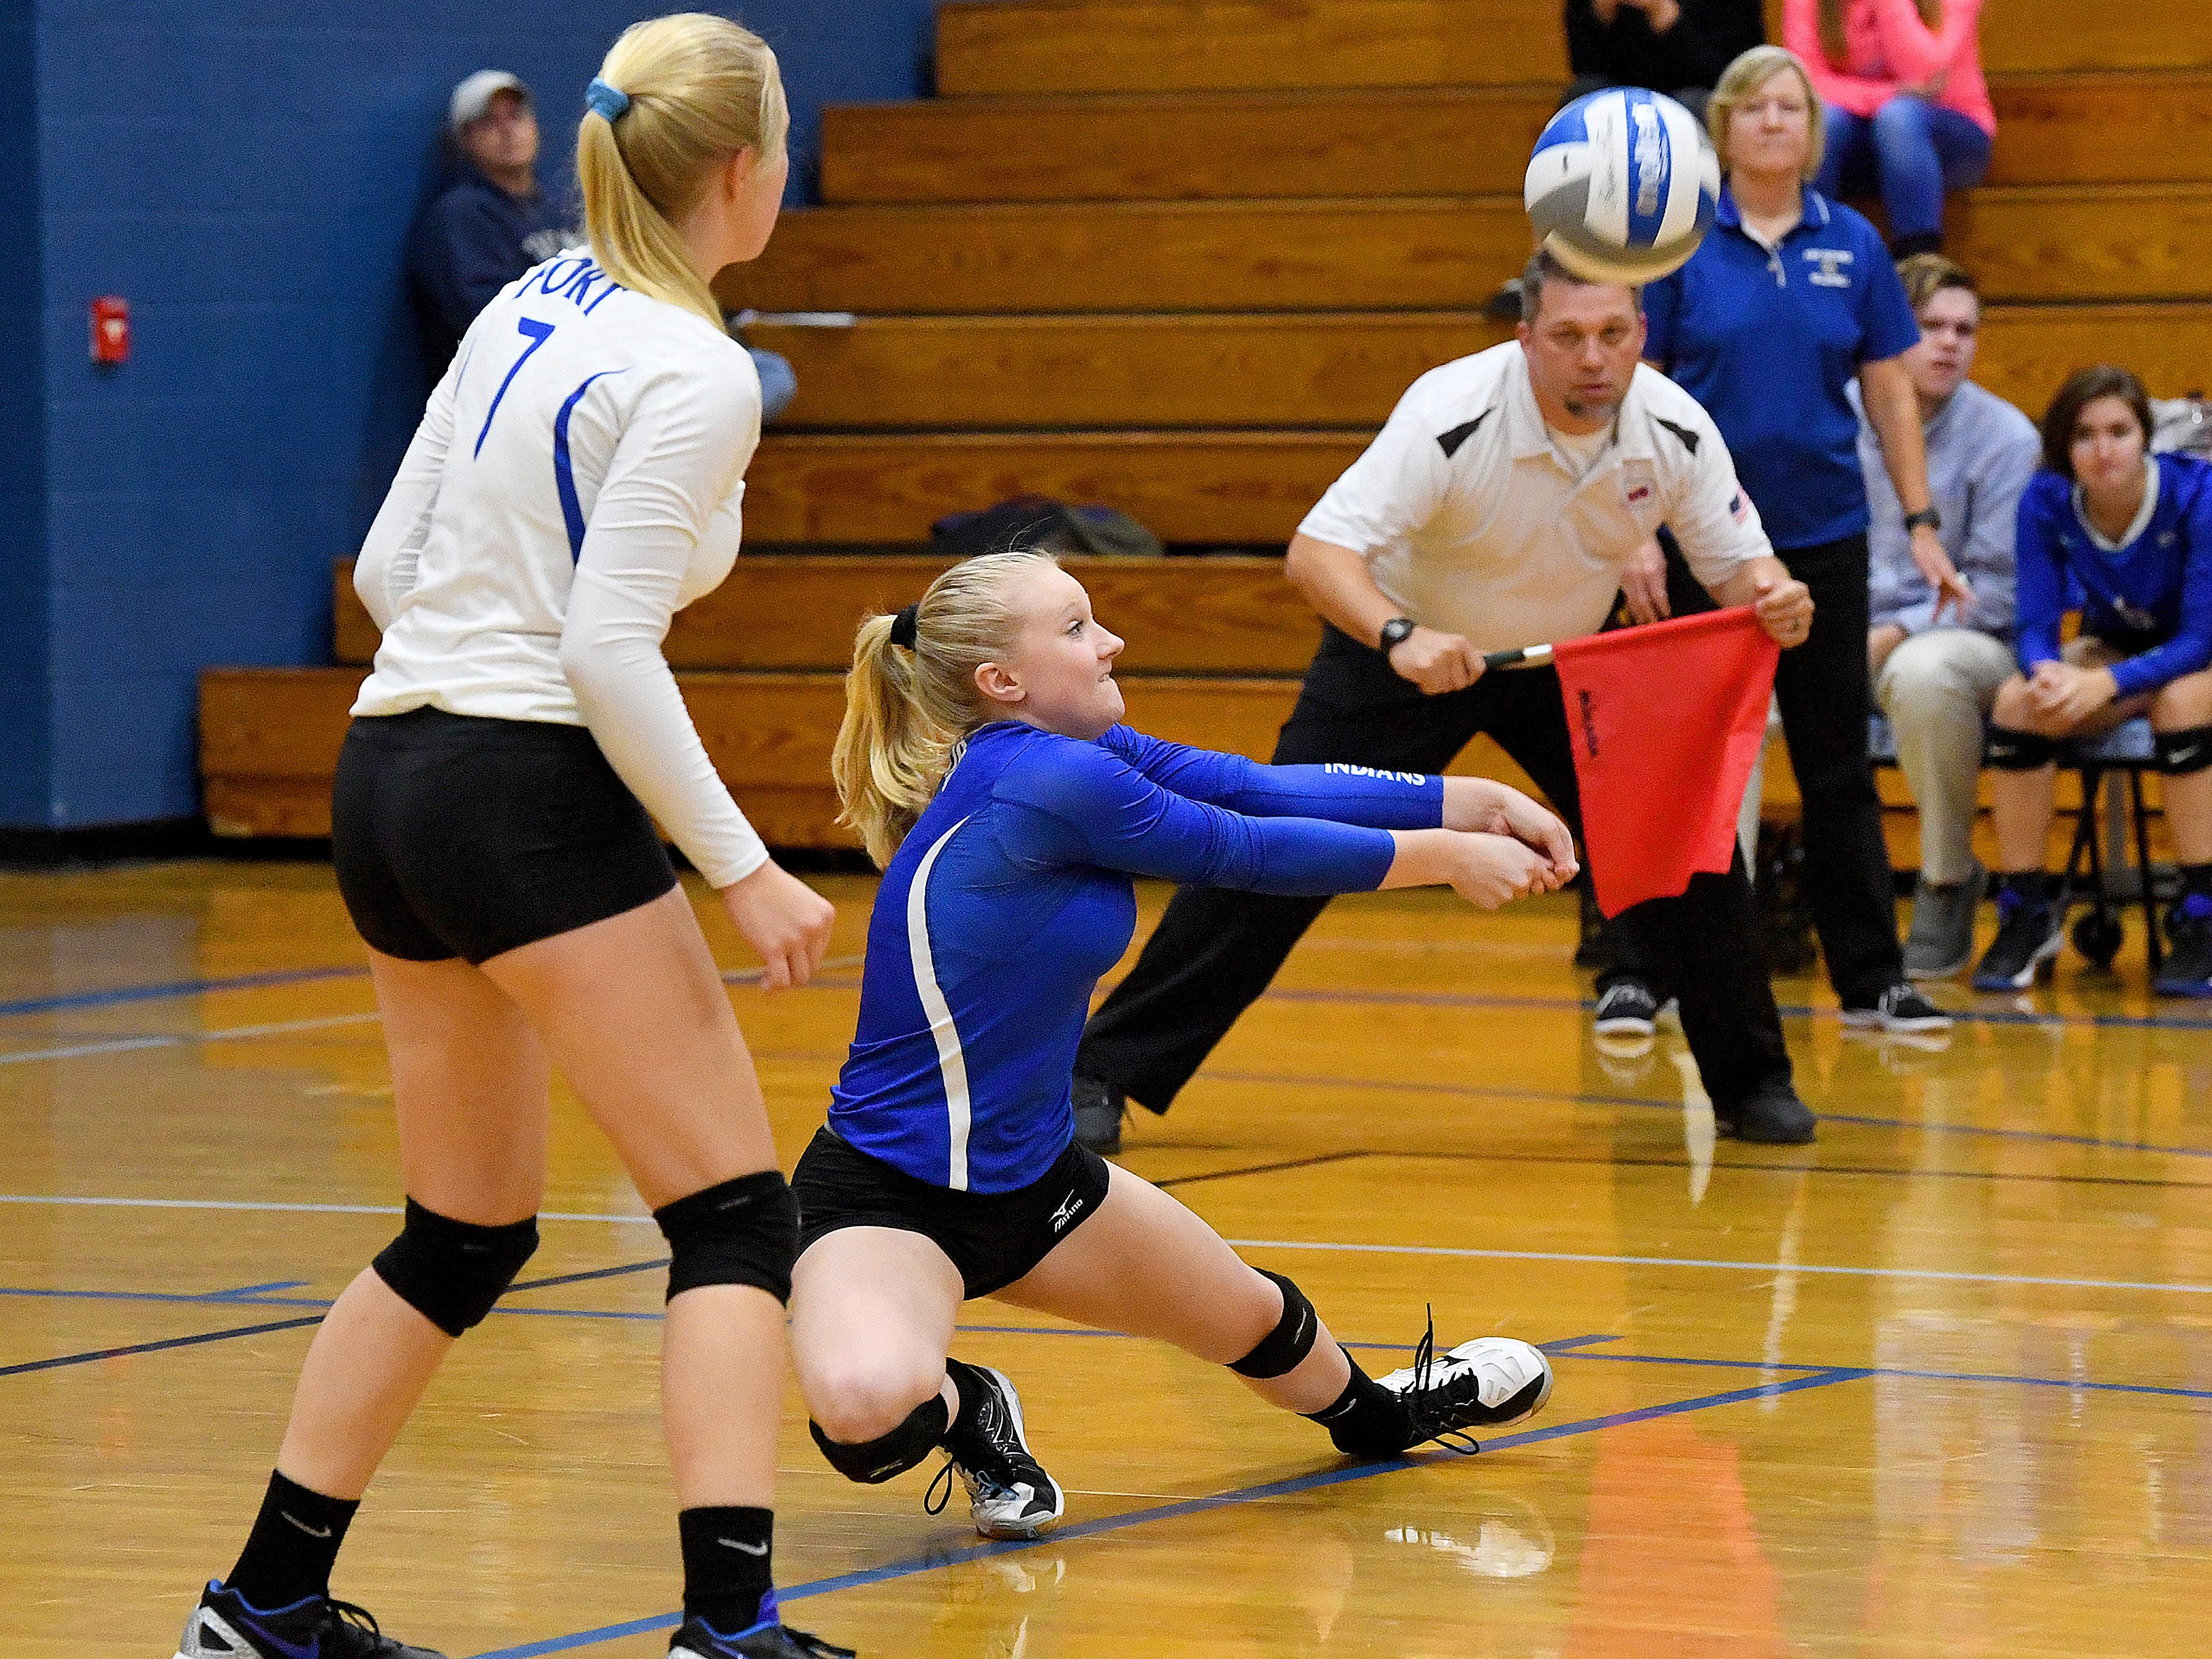 Fort Defiance's Ashley Humphries drops low to bump the ball during a Region 3C semifinal match played in Lexington on Monday, Nov. 5, 2018.